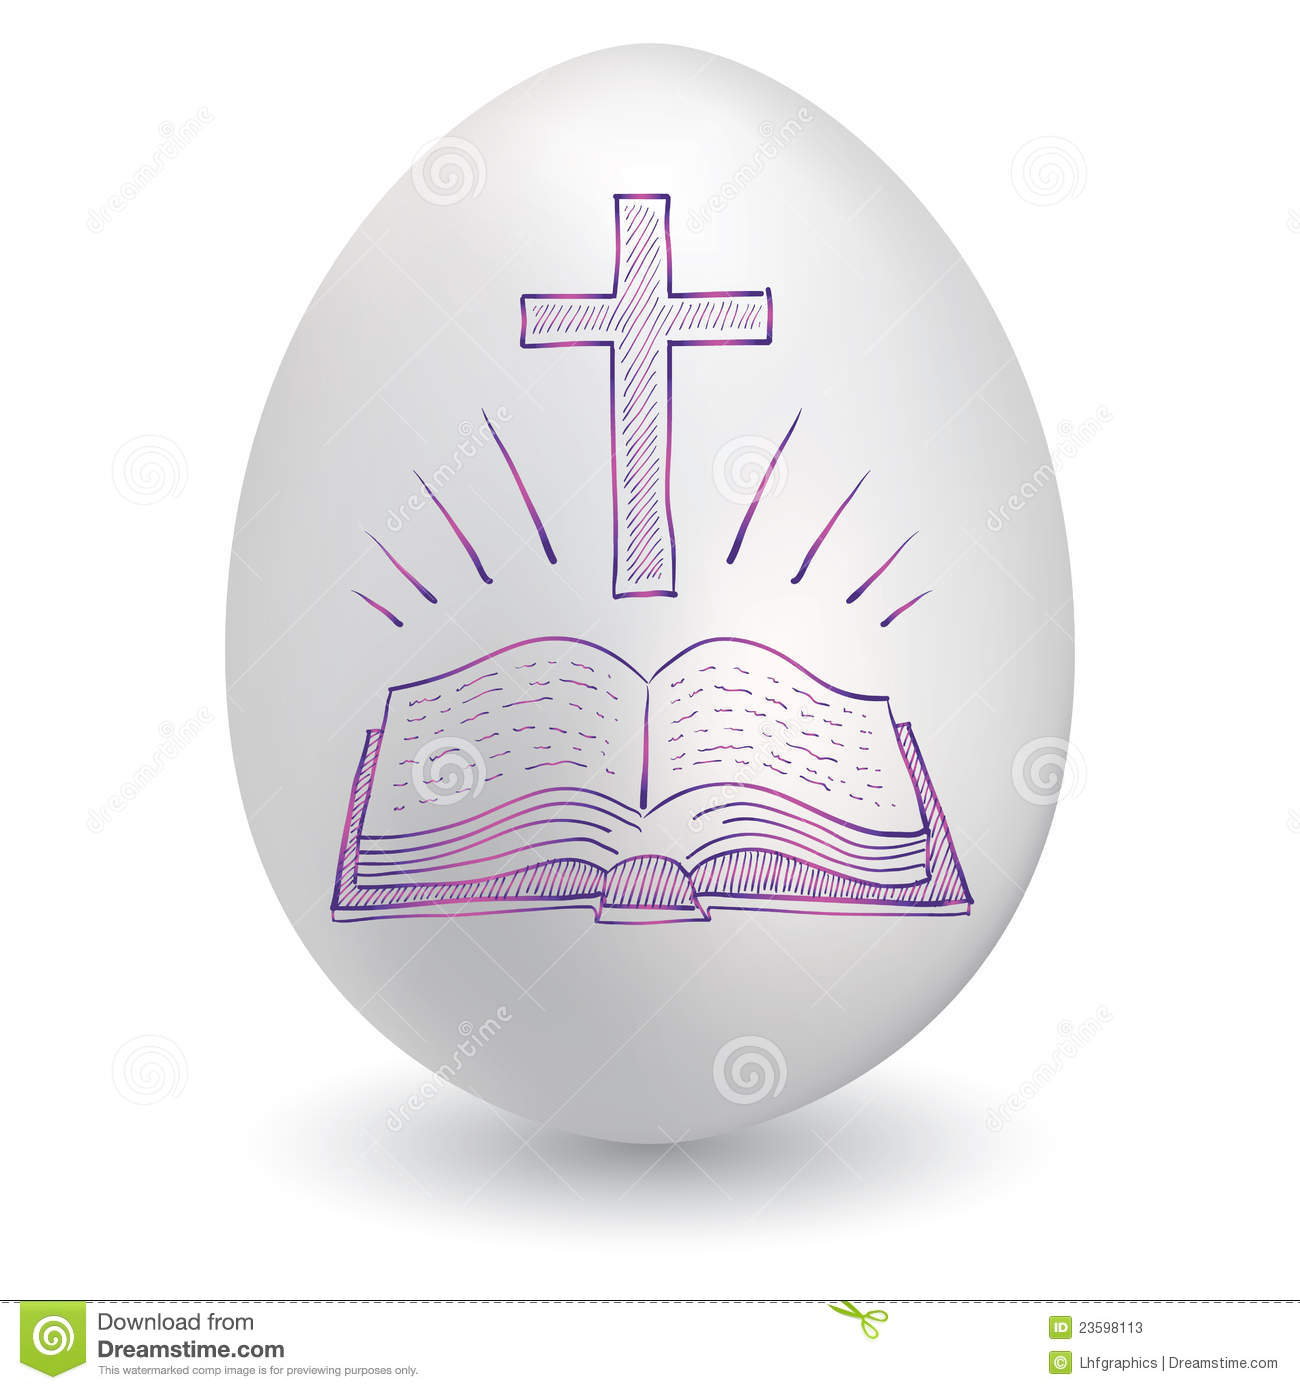 Cross and bible easter egg stock vector illustration of ghost cross and bible easter egg biocorpaavc